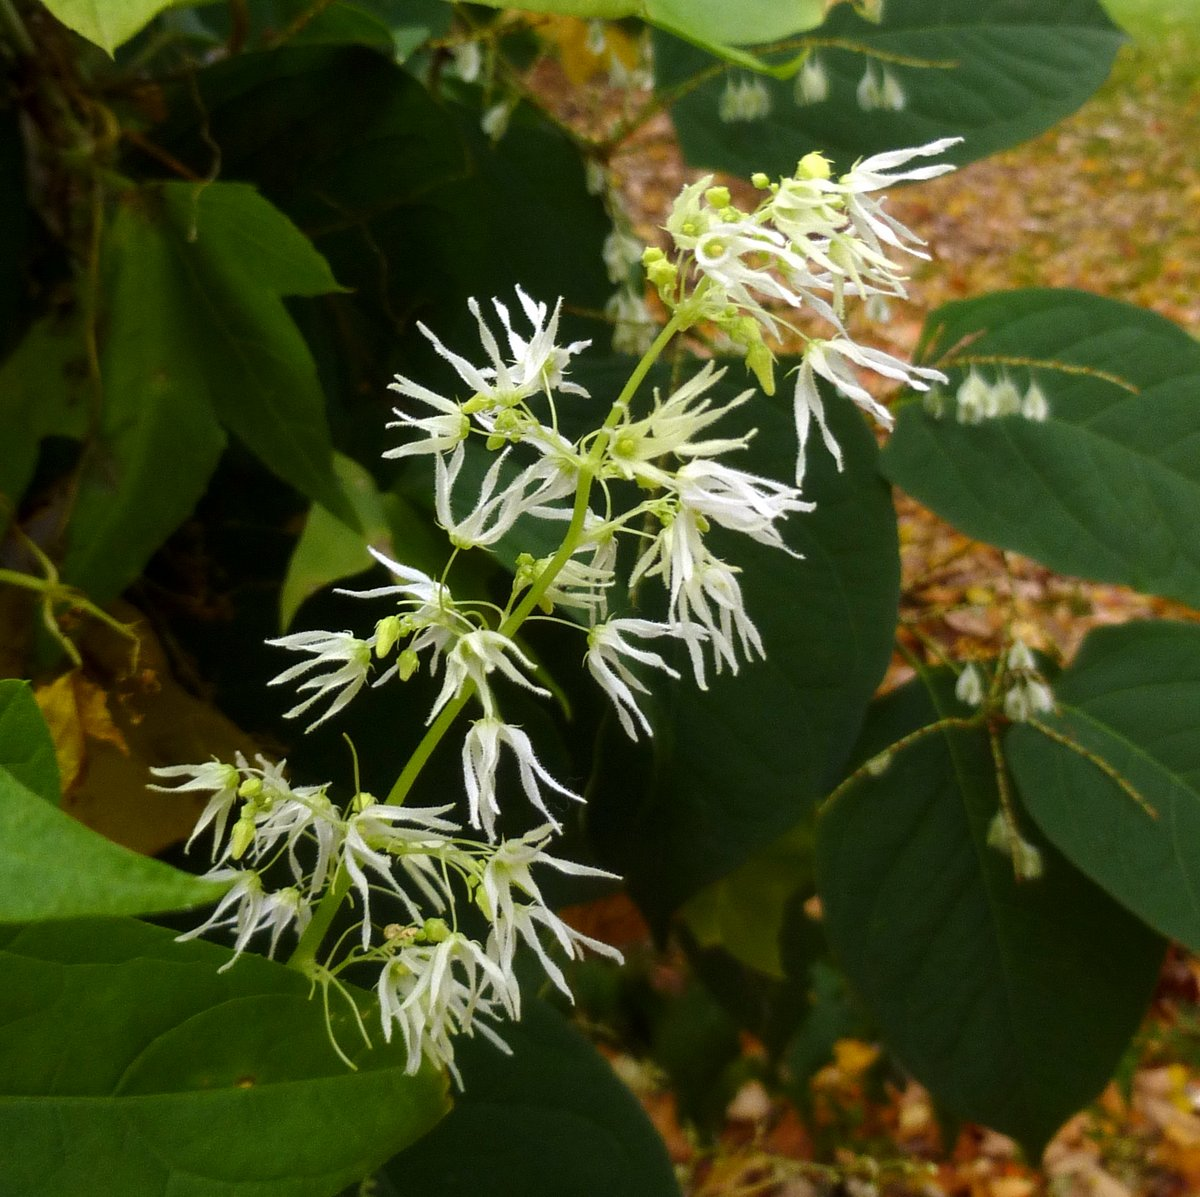 8. Wild Cucumber Blossoms